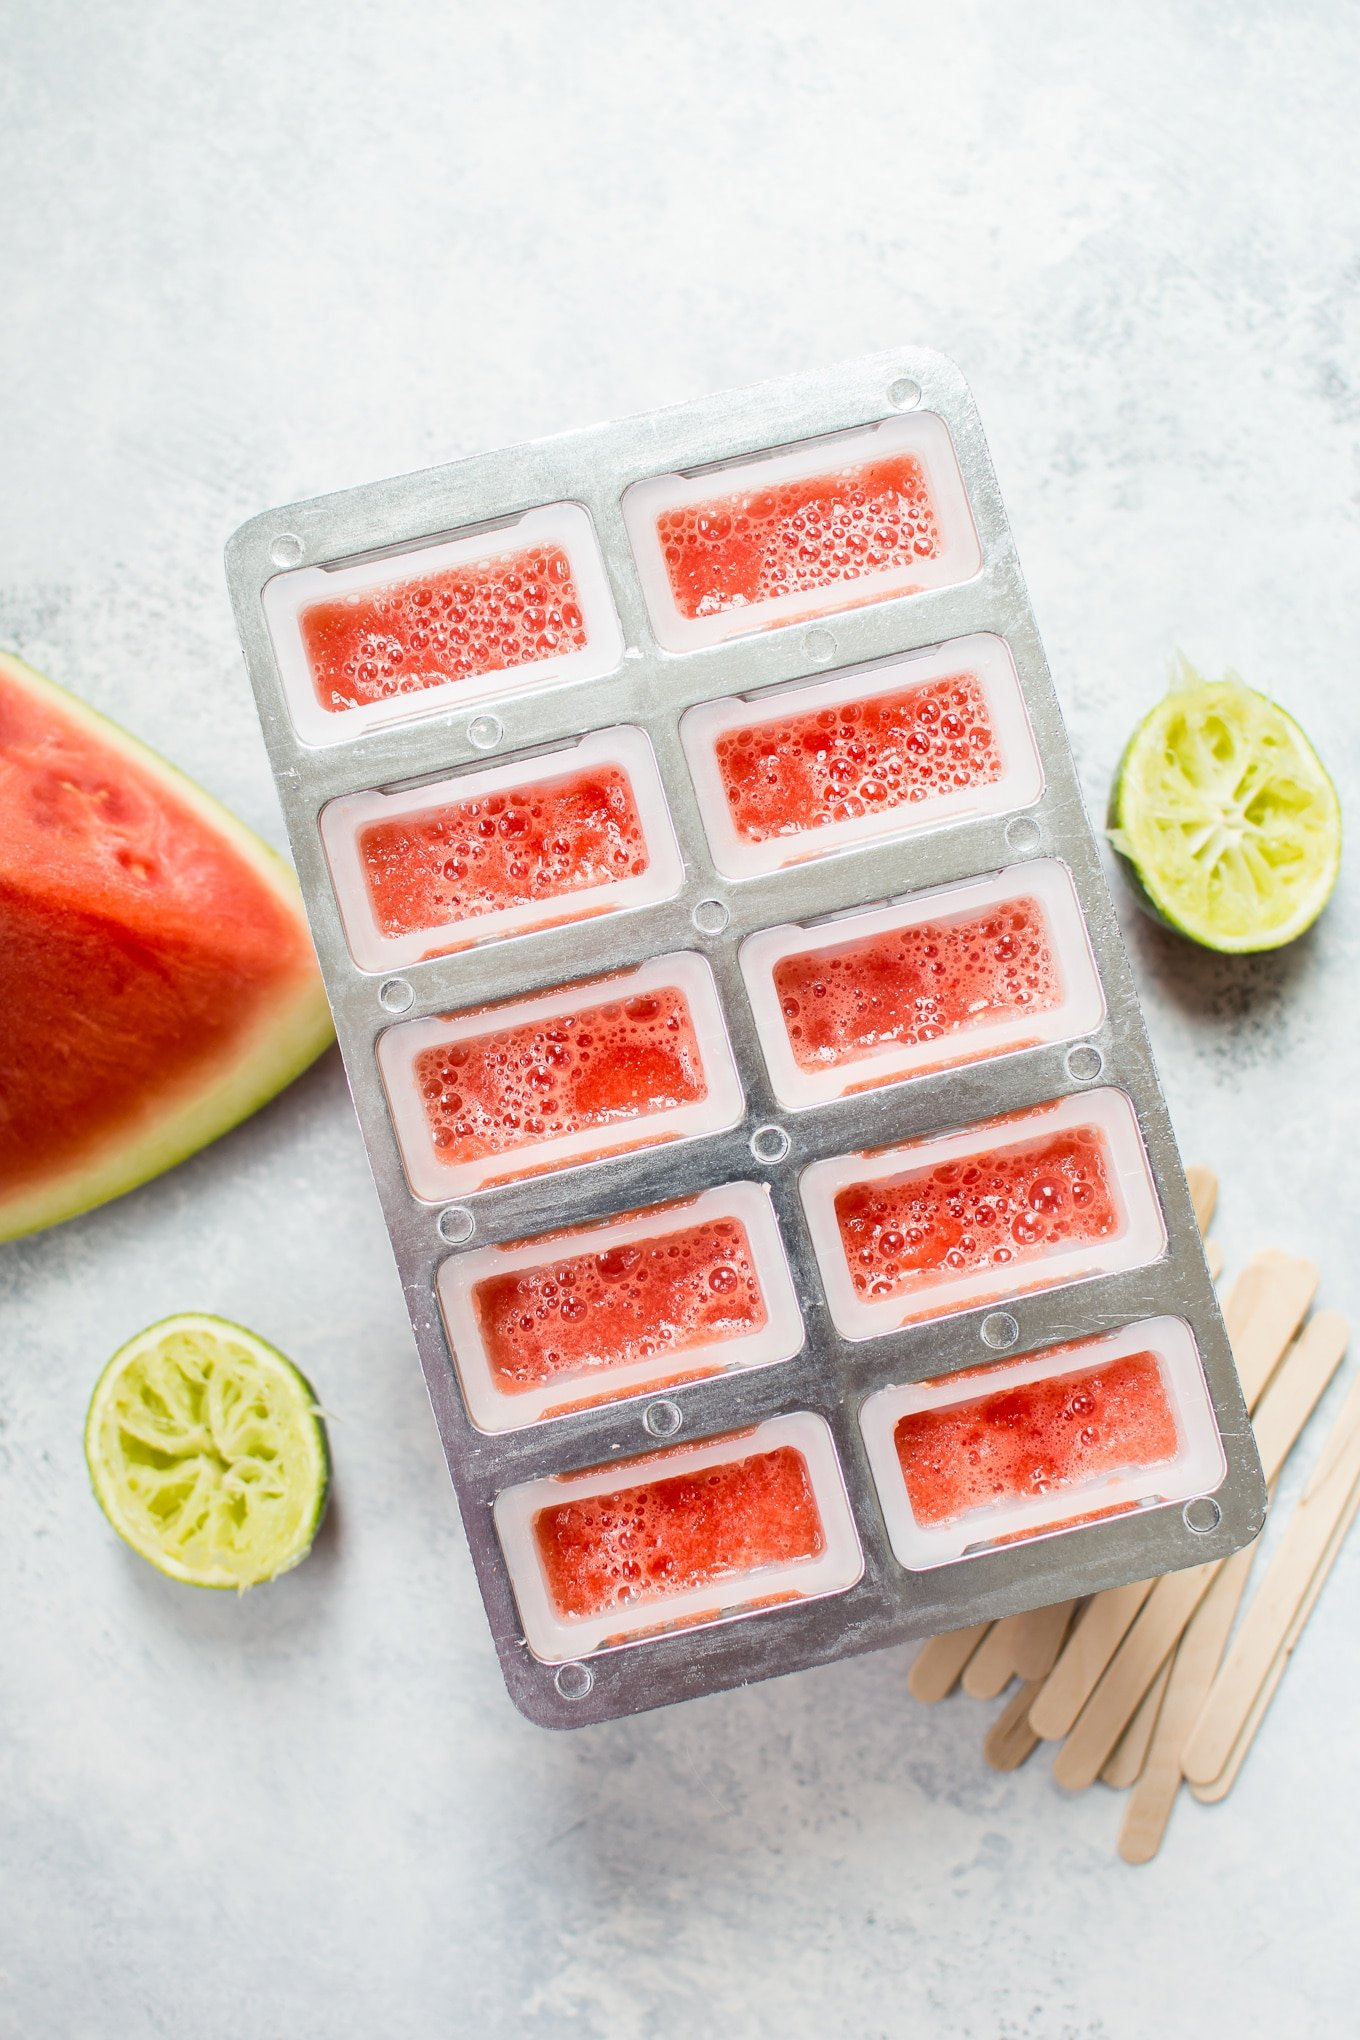 These watermelon margarita popsicles with no added sugar are naturally sweet, refreshing, and perfect on a hot summer day!